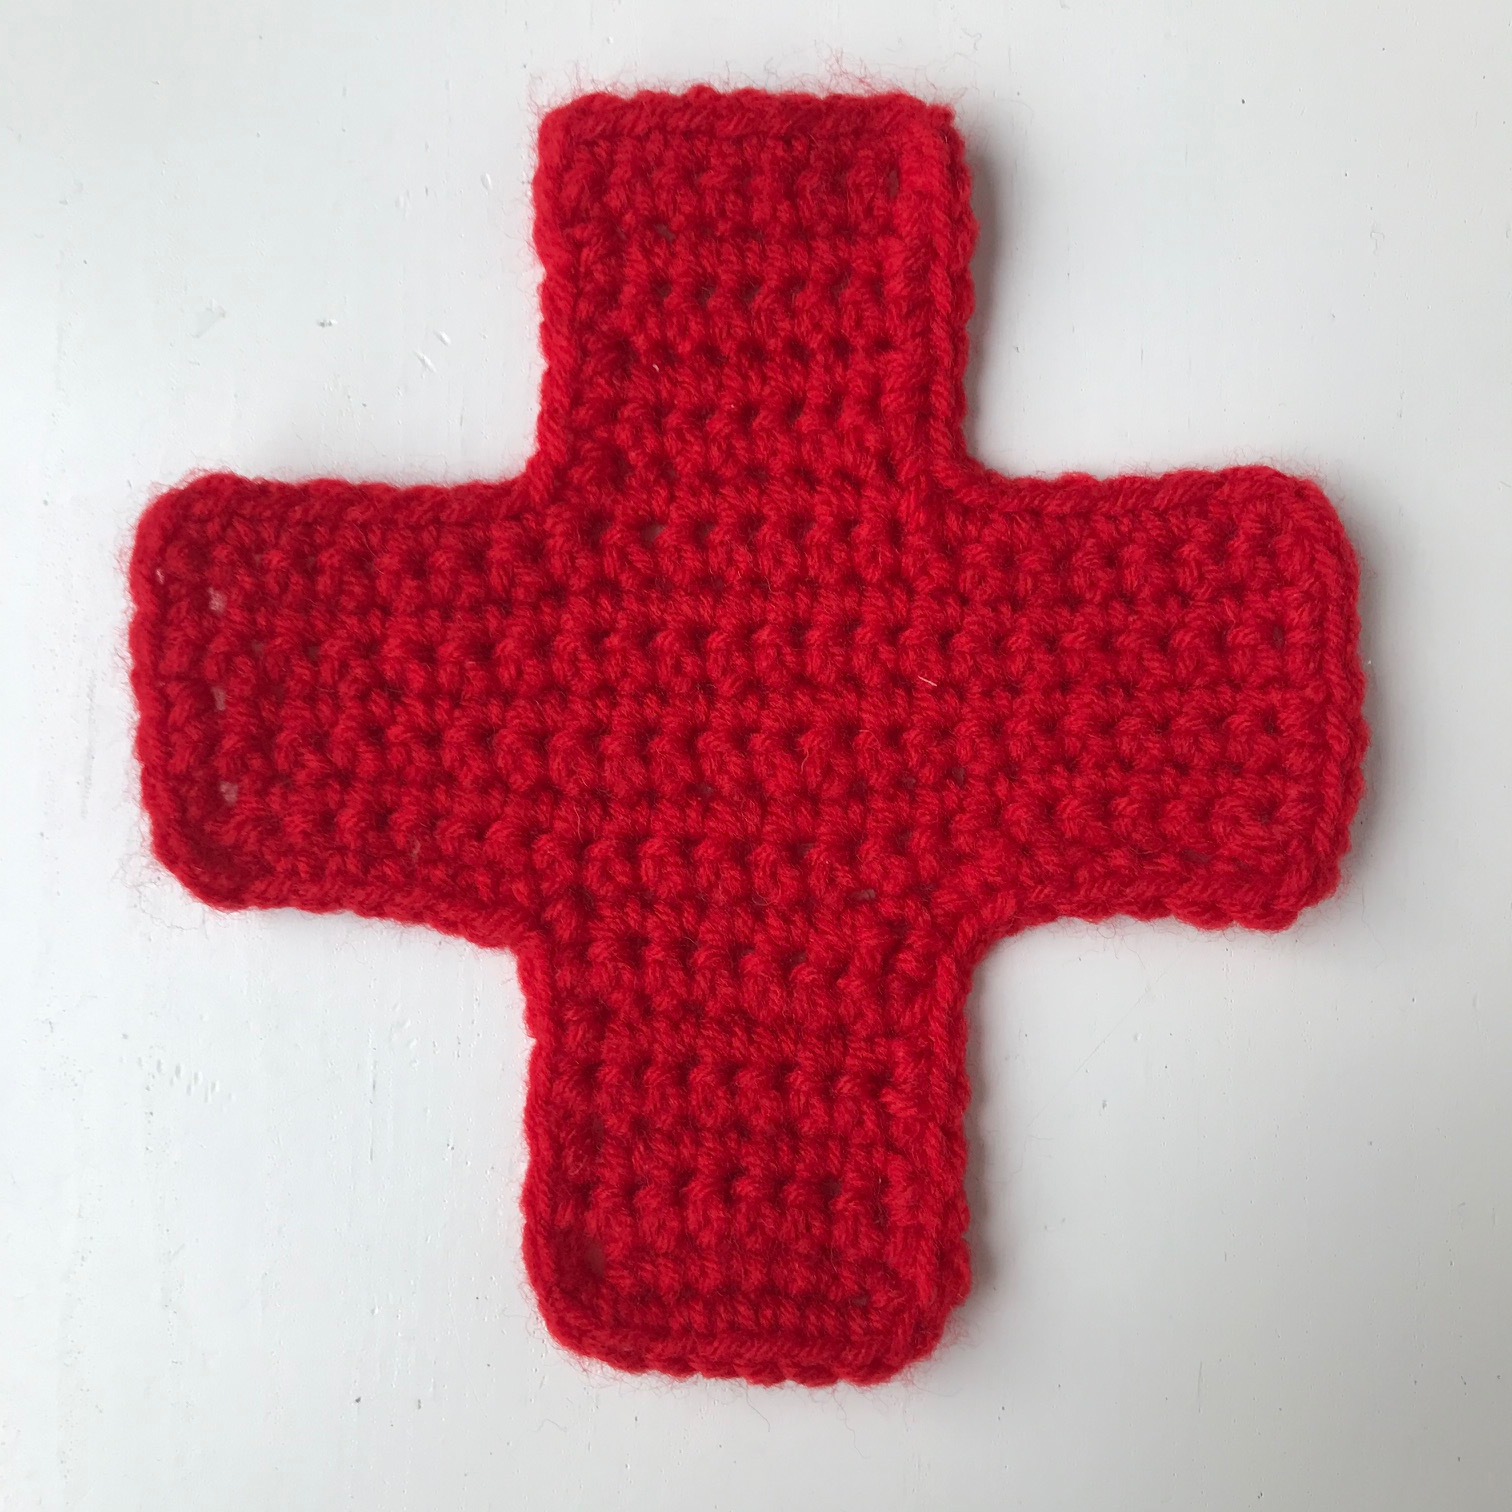 meetthemaker day 15, rood kruis , gehakt, red cross, crochet